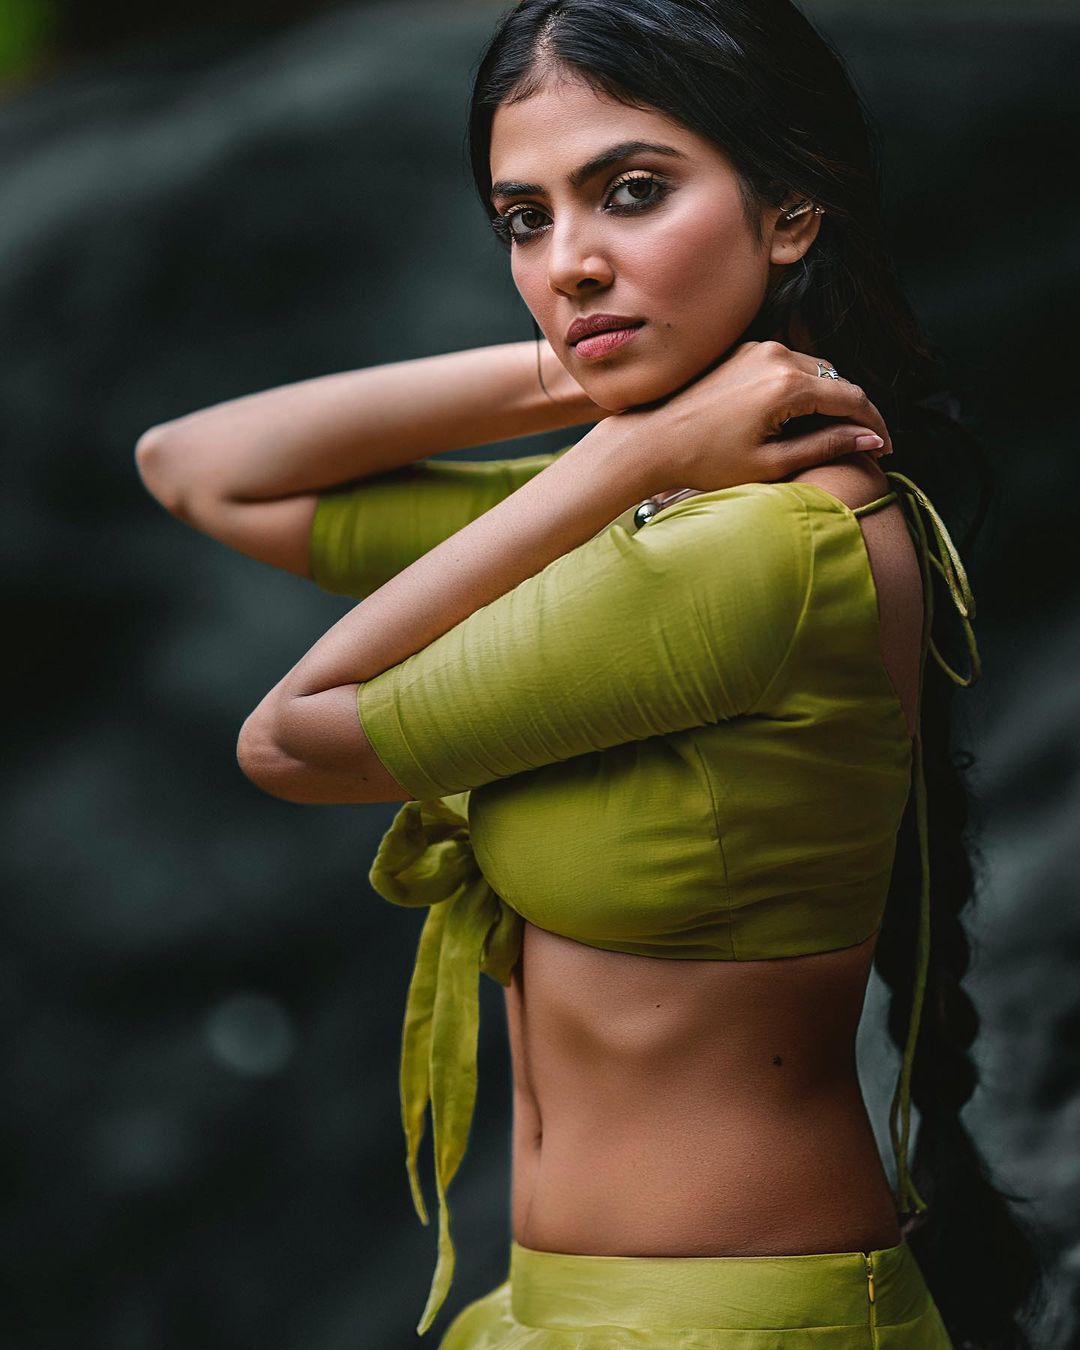 Malavika Mohanan flaunts her sexy curves. (Image: Instagram)